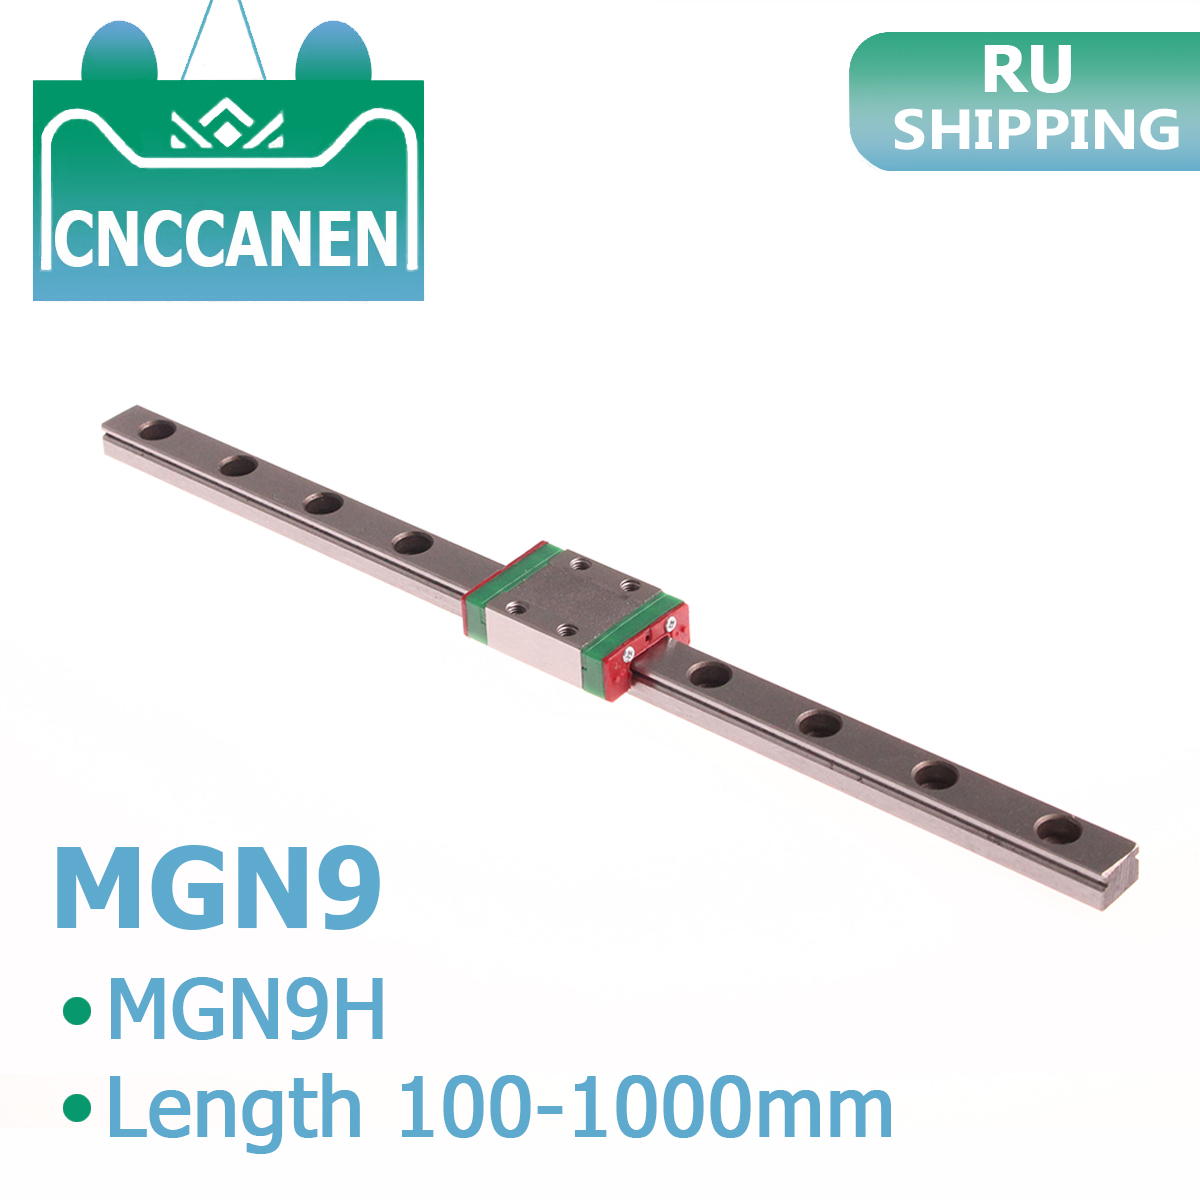 MGN9 Miniature Linear Rail Slide 100mm 250mm 300mm 350mm 400mm 1000mm 1PCS MGN Linear Guide MGN9H Carriage Block CNC 3D Printer